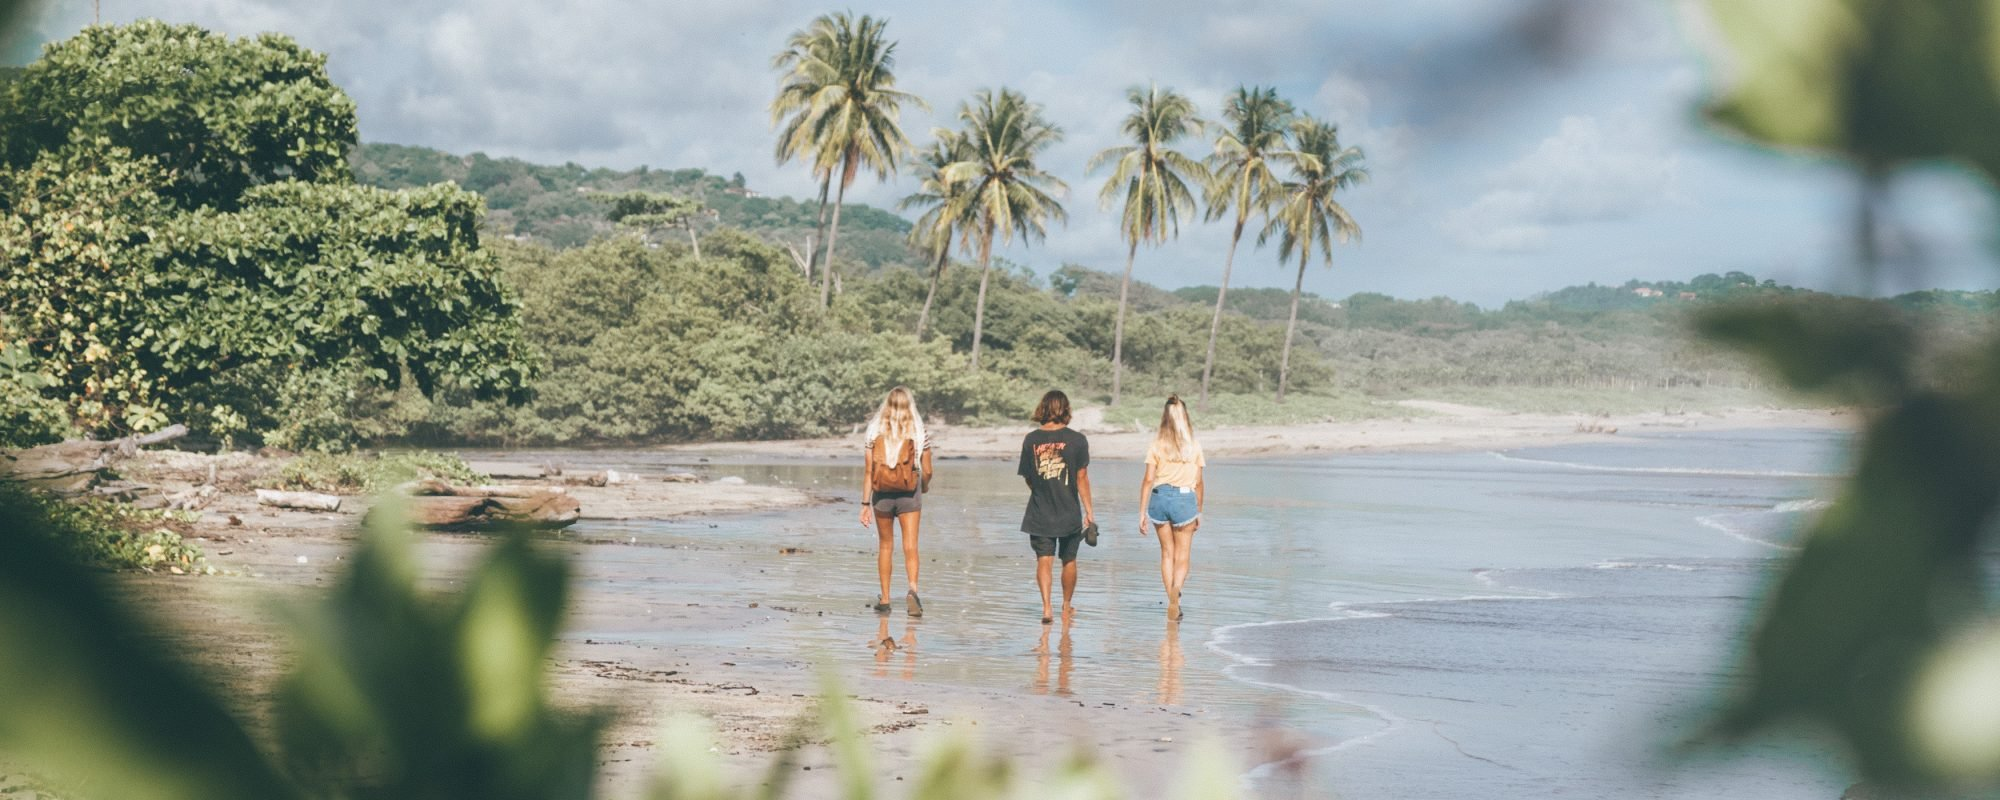 Walk On Guiones Beach Costa Rica Surf Camp